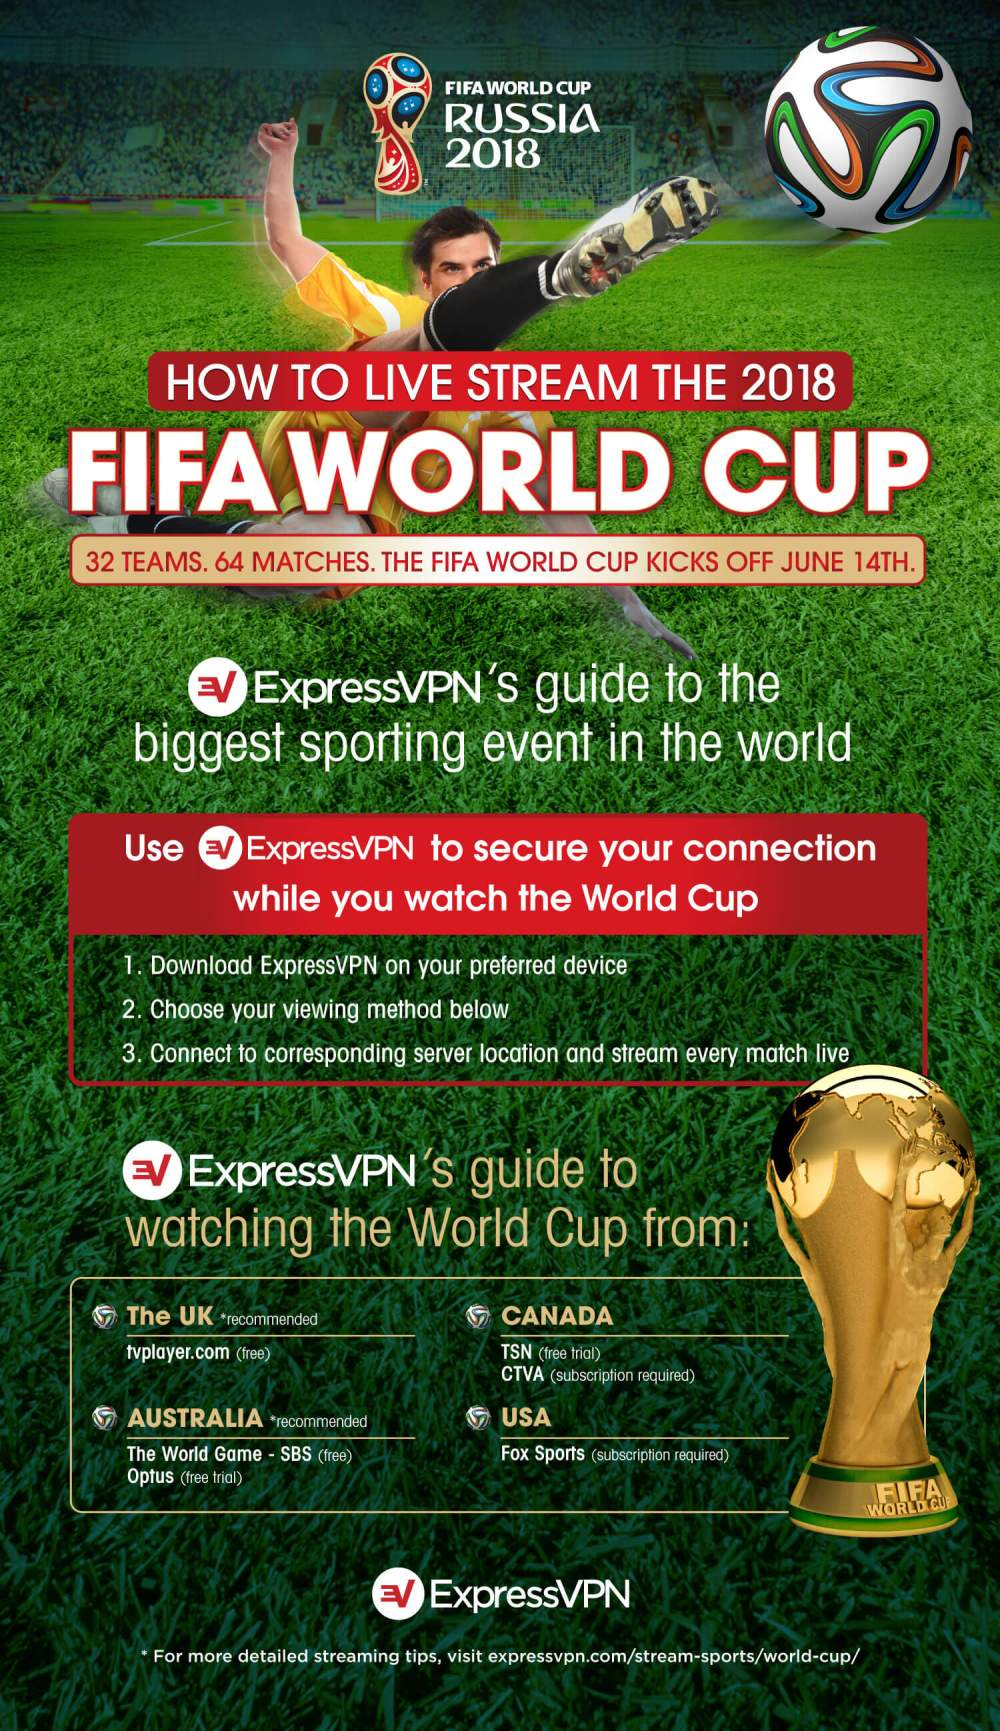 where to find World Cup 2018 online stream